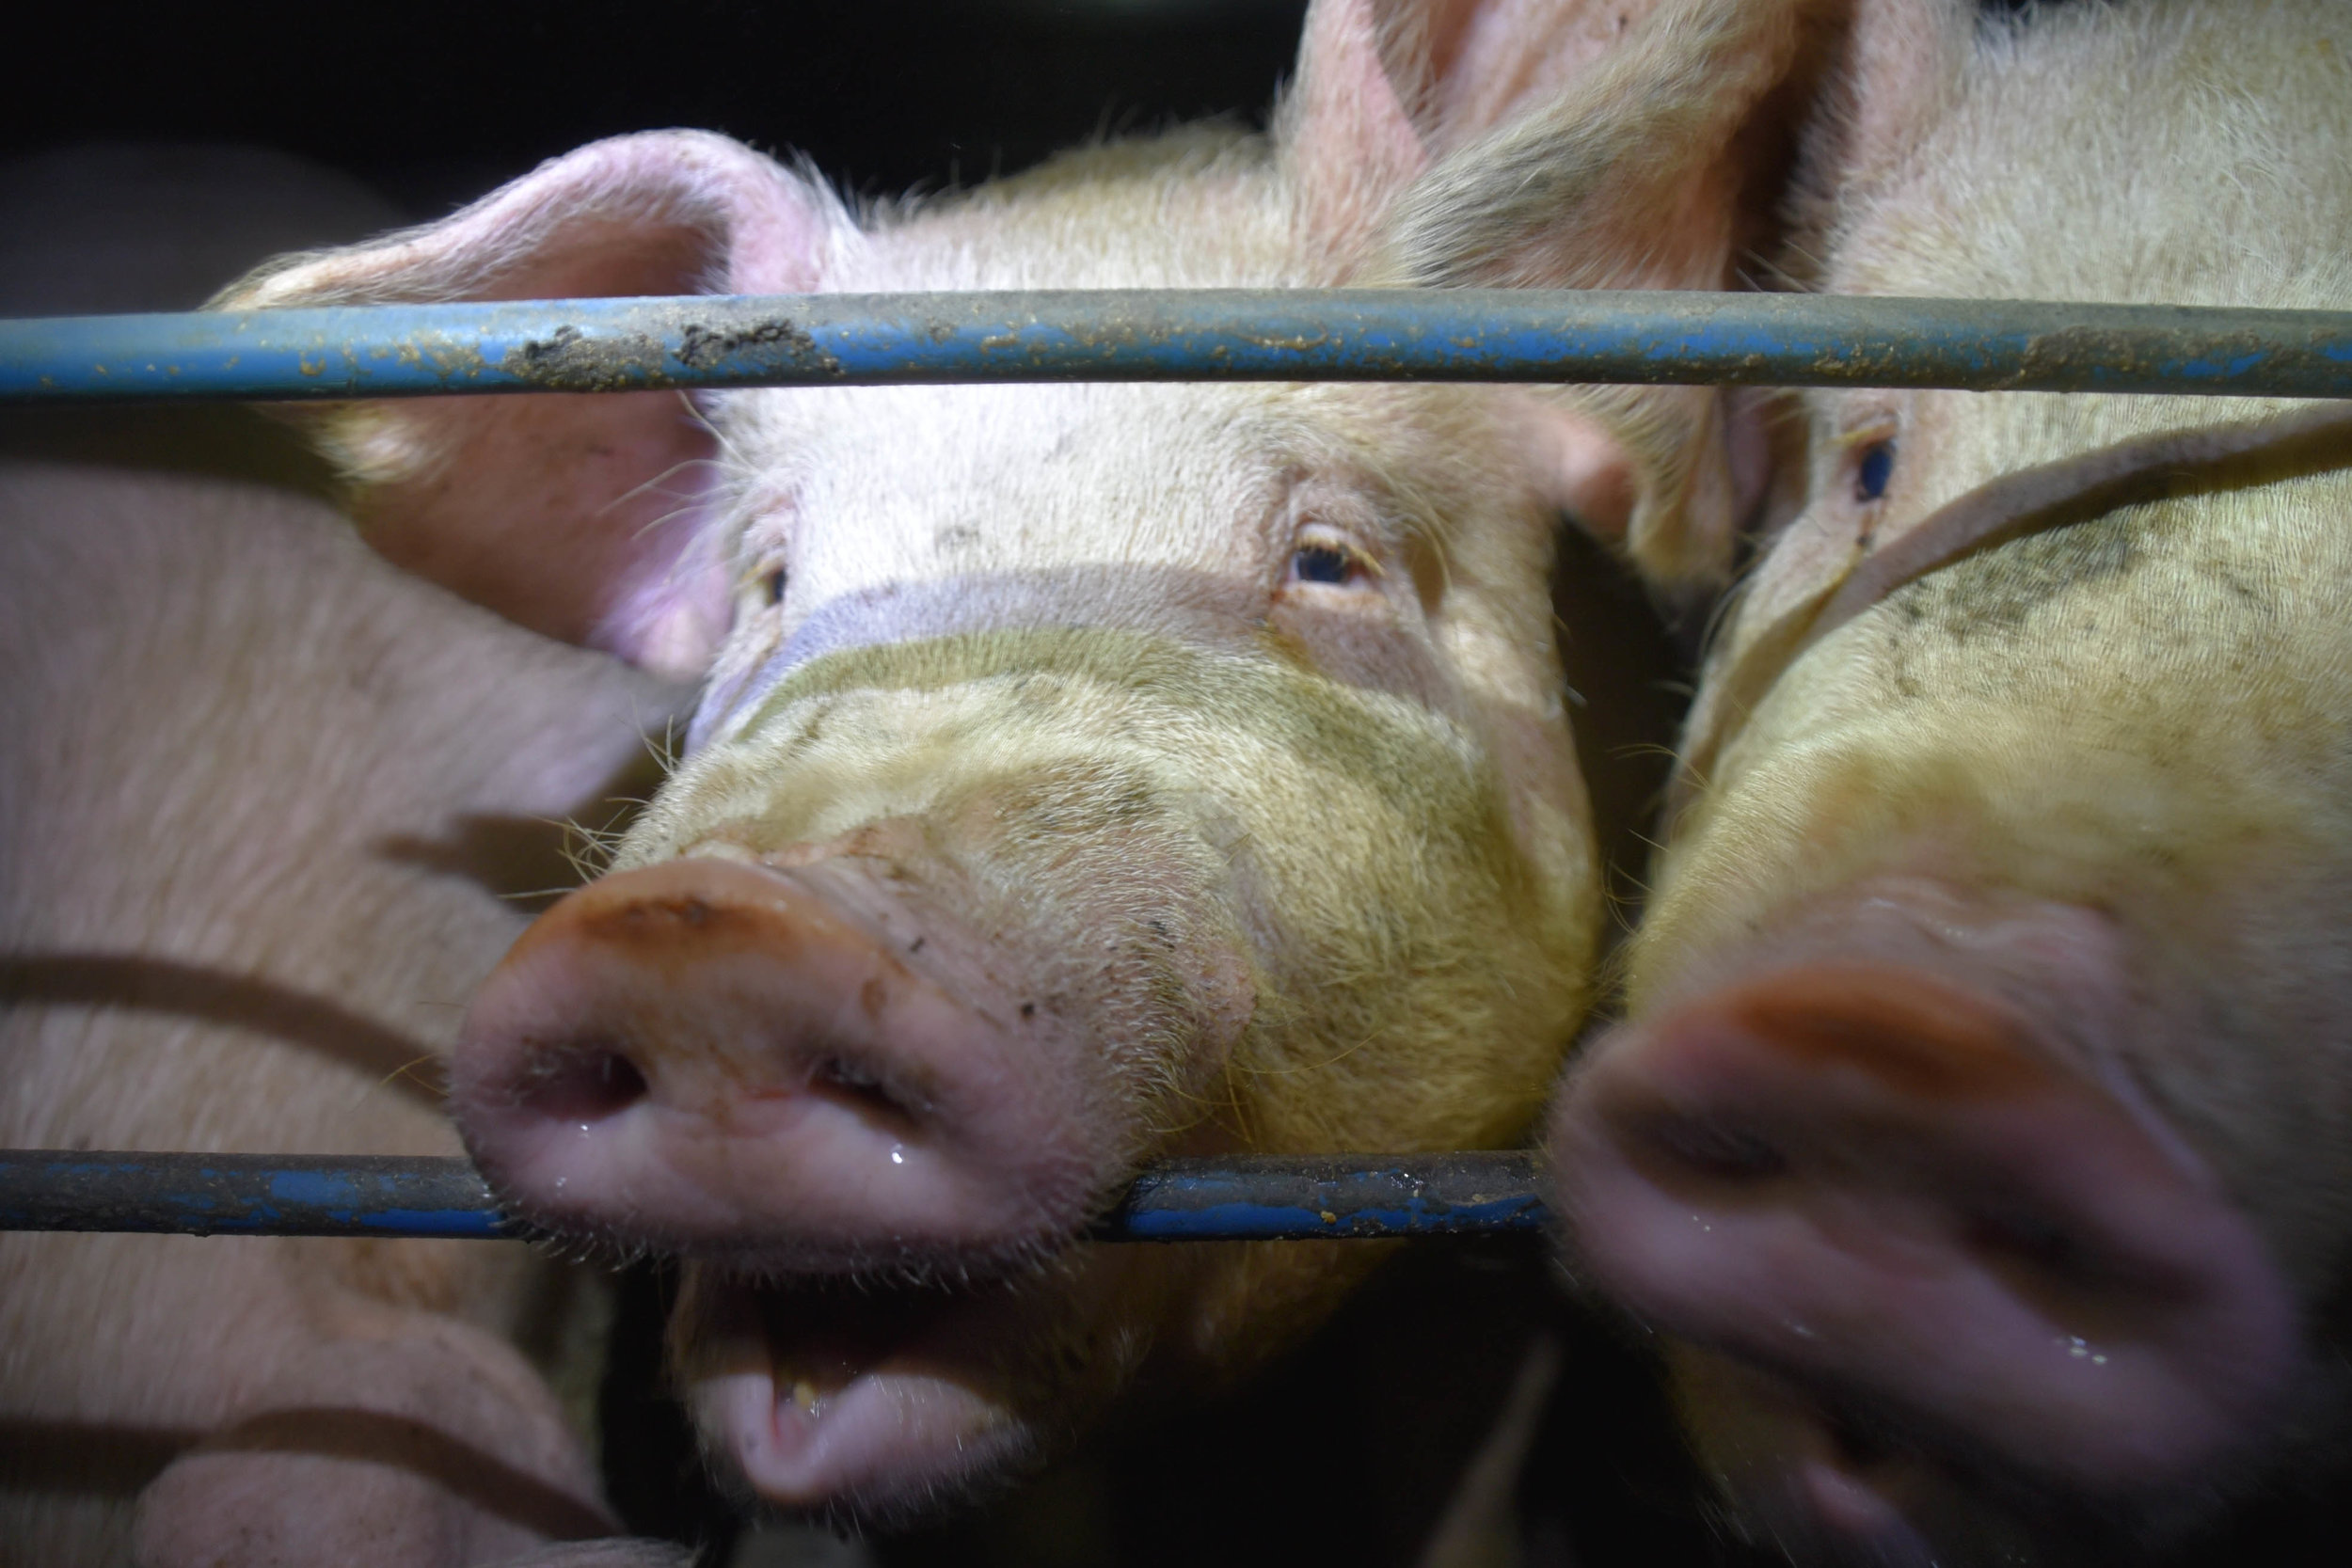 Pigs, said to be smarter than dogs by scientists, commonly chew the bars of their cages in sheer frustration and boredom. Many are literally bored out of their minds.